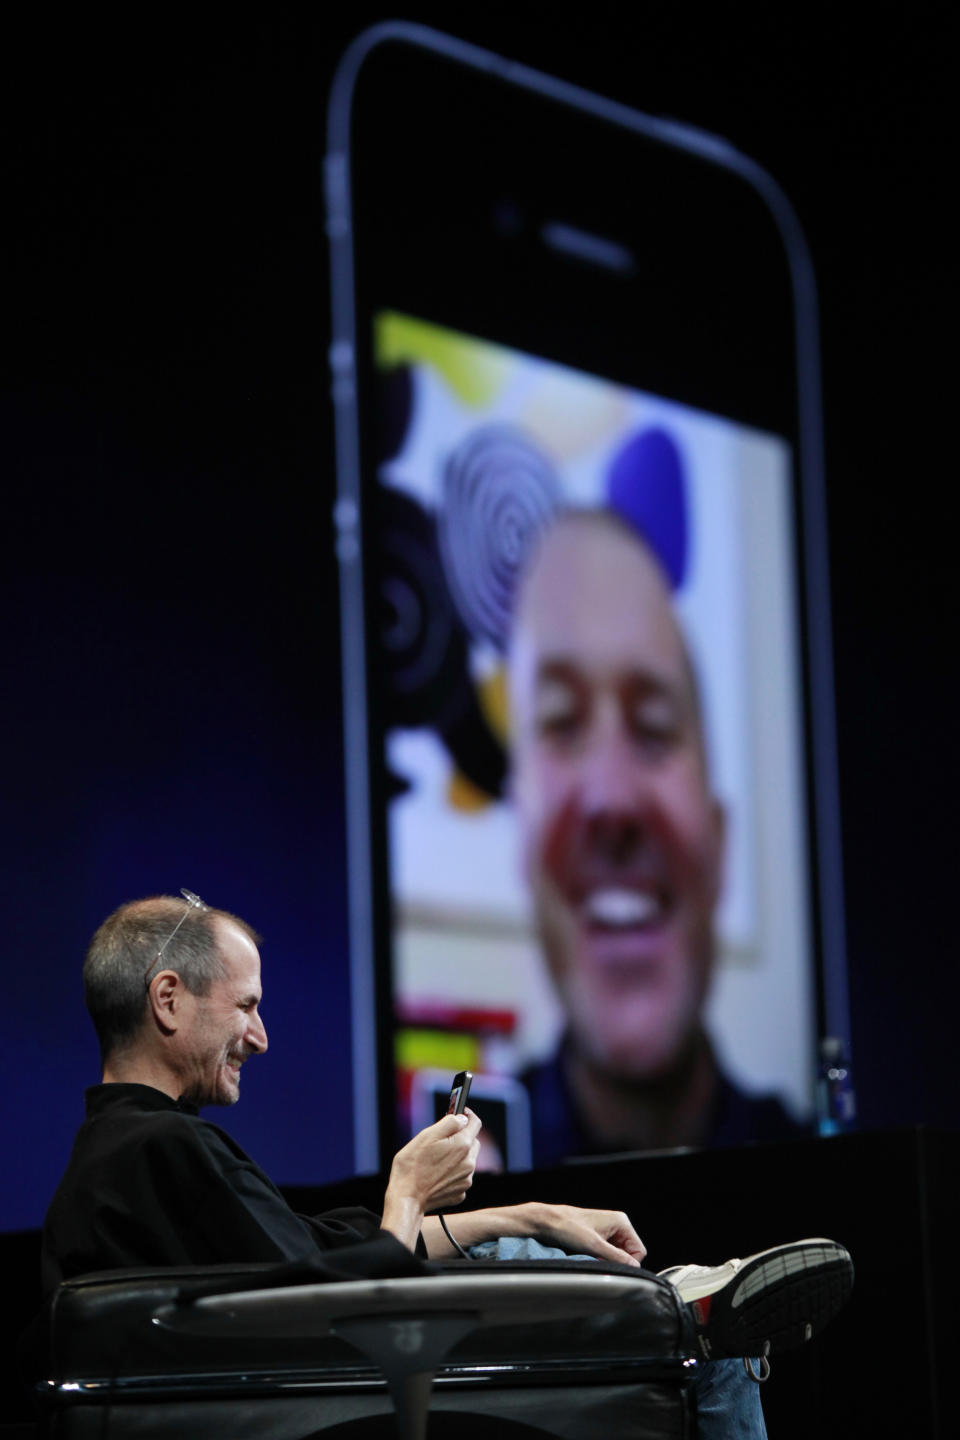 In this June 7, 2010 photo shows Apple CEO Steve Jobs with an iPhone using FaceTime with Jonathan Ive, Apple senior vice president of Industrial Design, at the Apple Worldwide Developers Conference, in San Francisco. (AP Photo/Paul Sakuma)